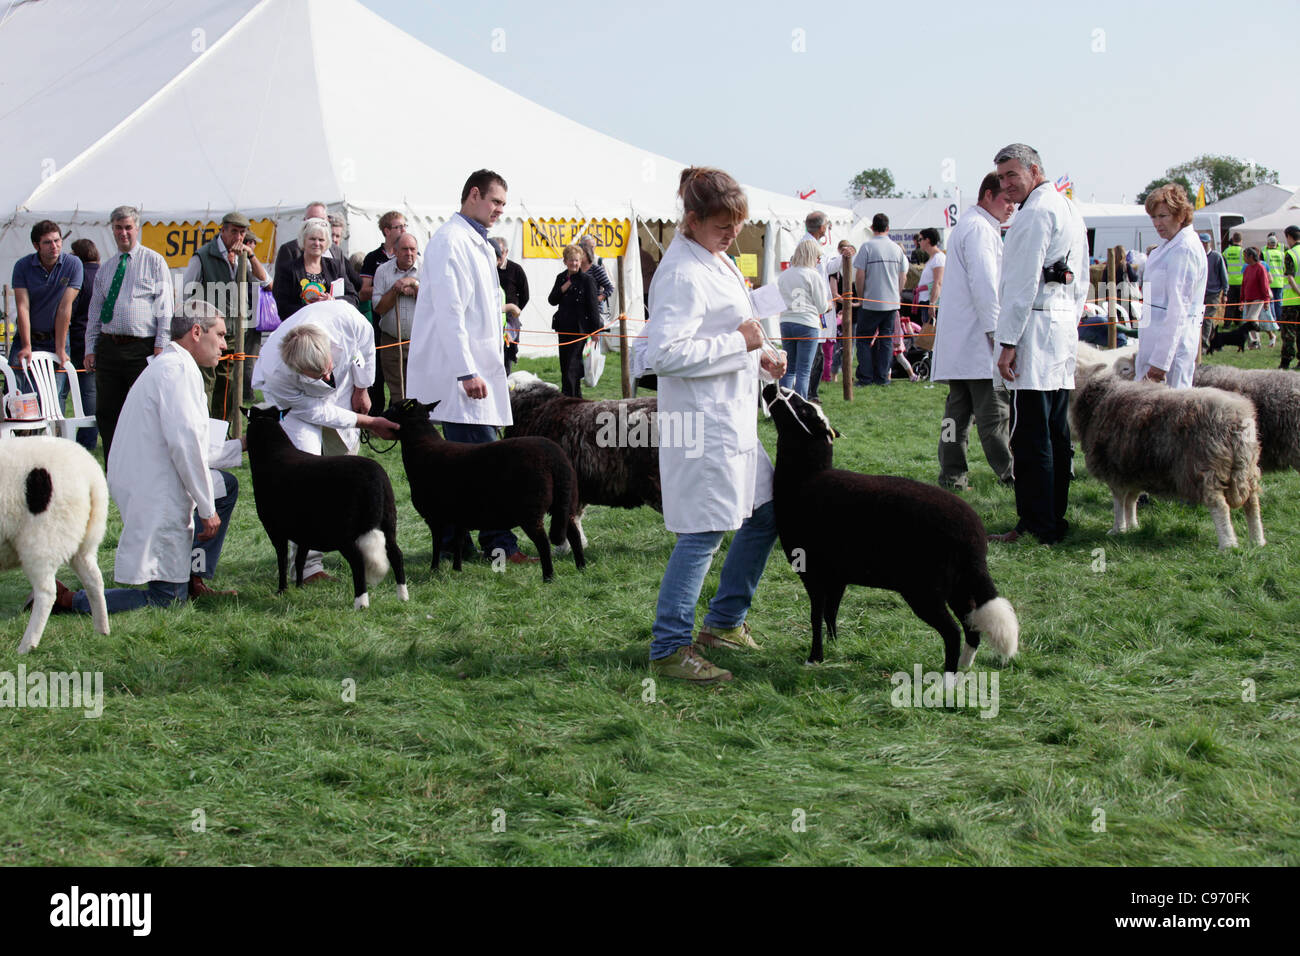 Rare breeds competition at Gransden and District Agricultural Show 2011 - Stock Image